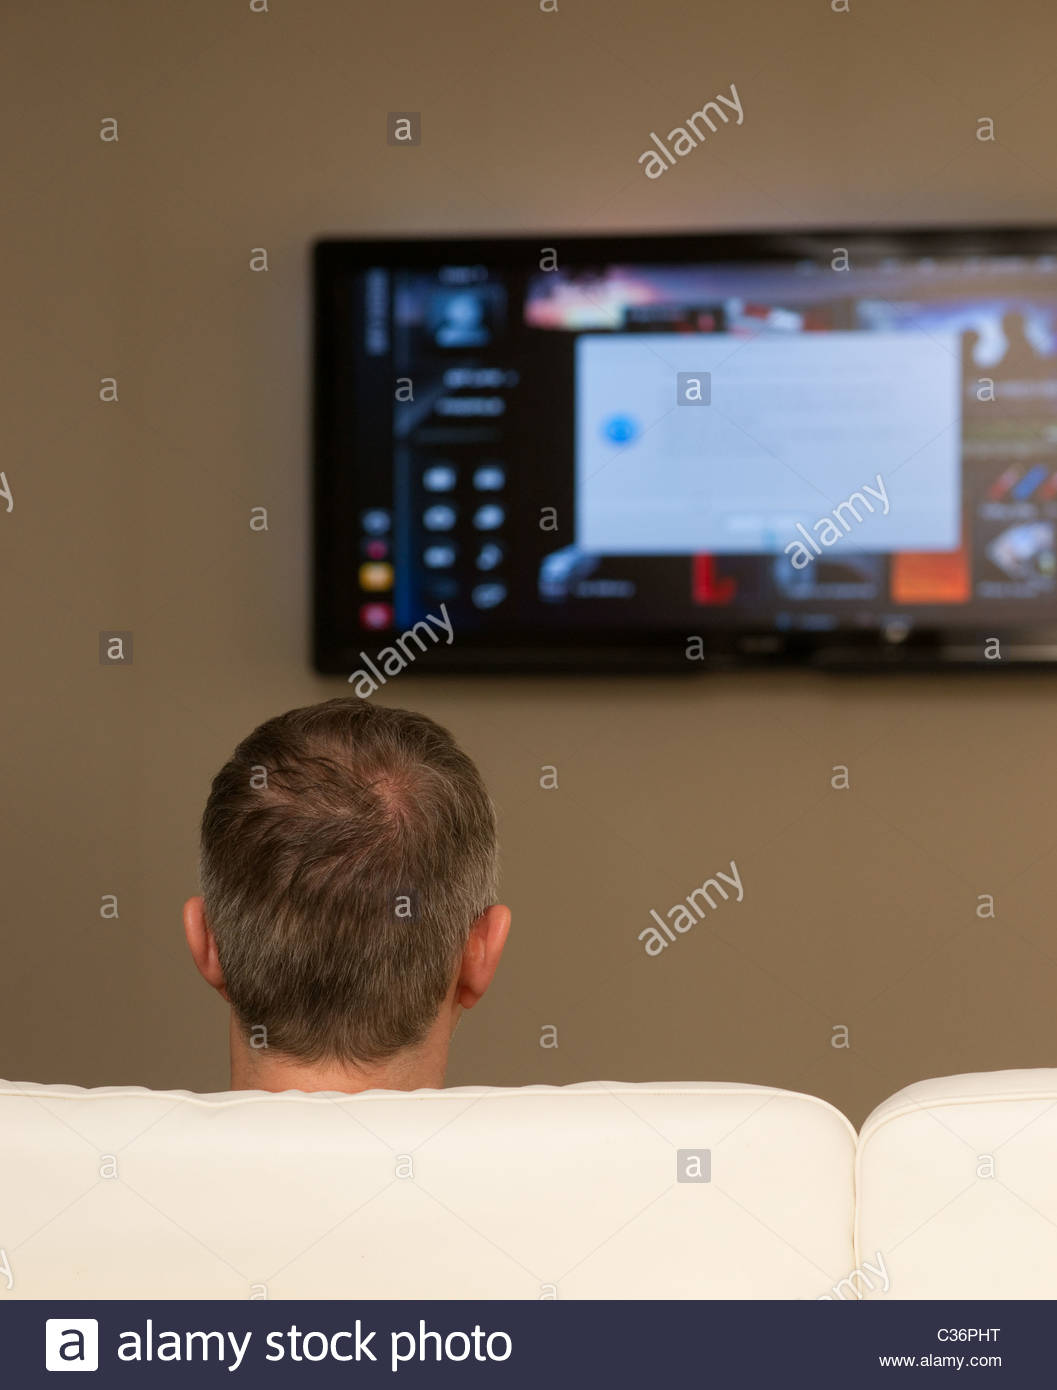 Man watching big screen television tv watch home flat screen wall sofa couch - Stock Image